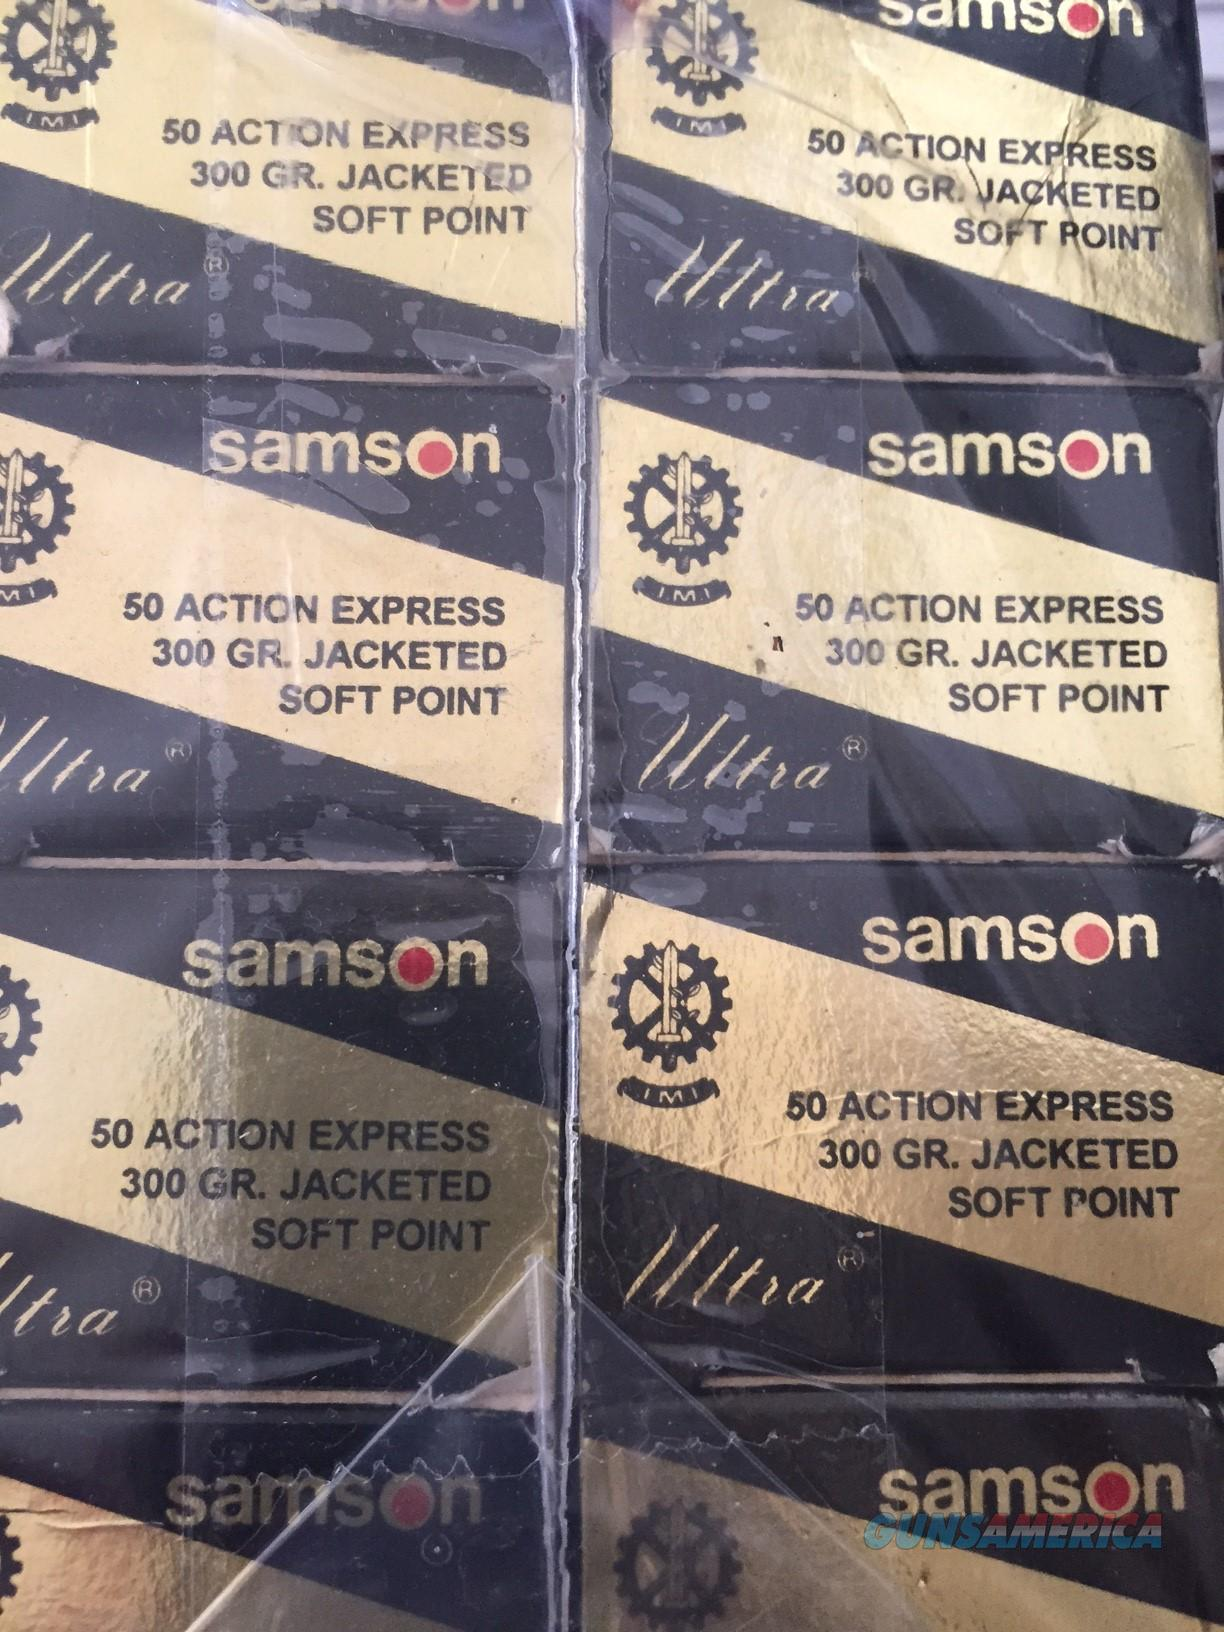 50AE NEW Factory Samson 300 gr JSP ammo 8.5 boxes  Non-Guns > Ammunition